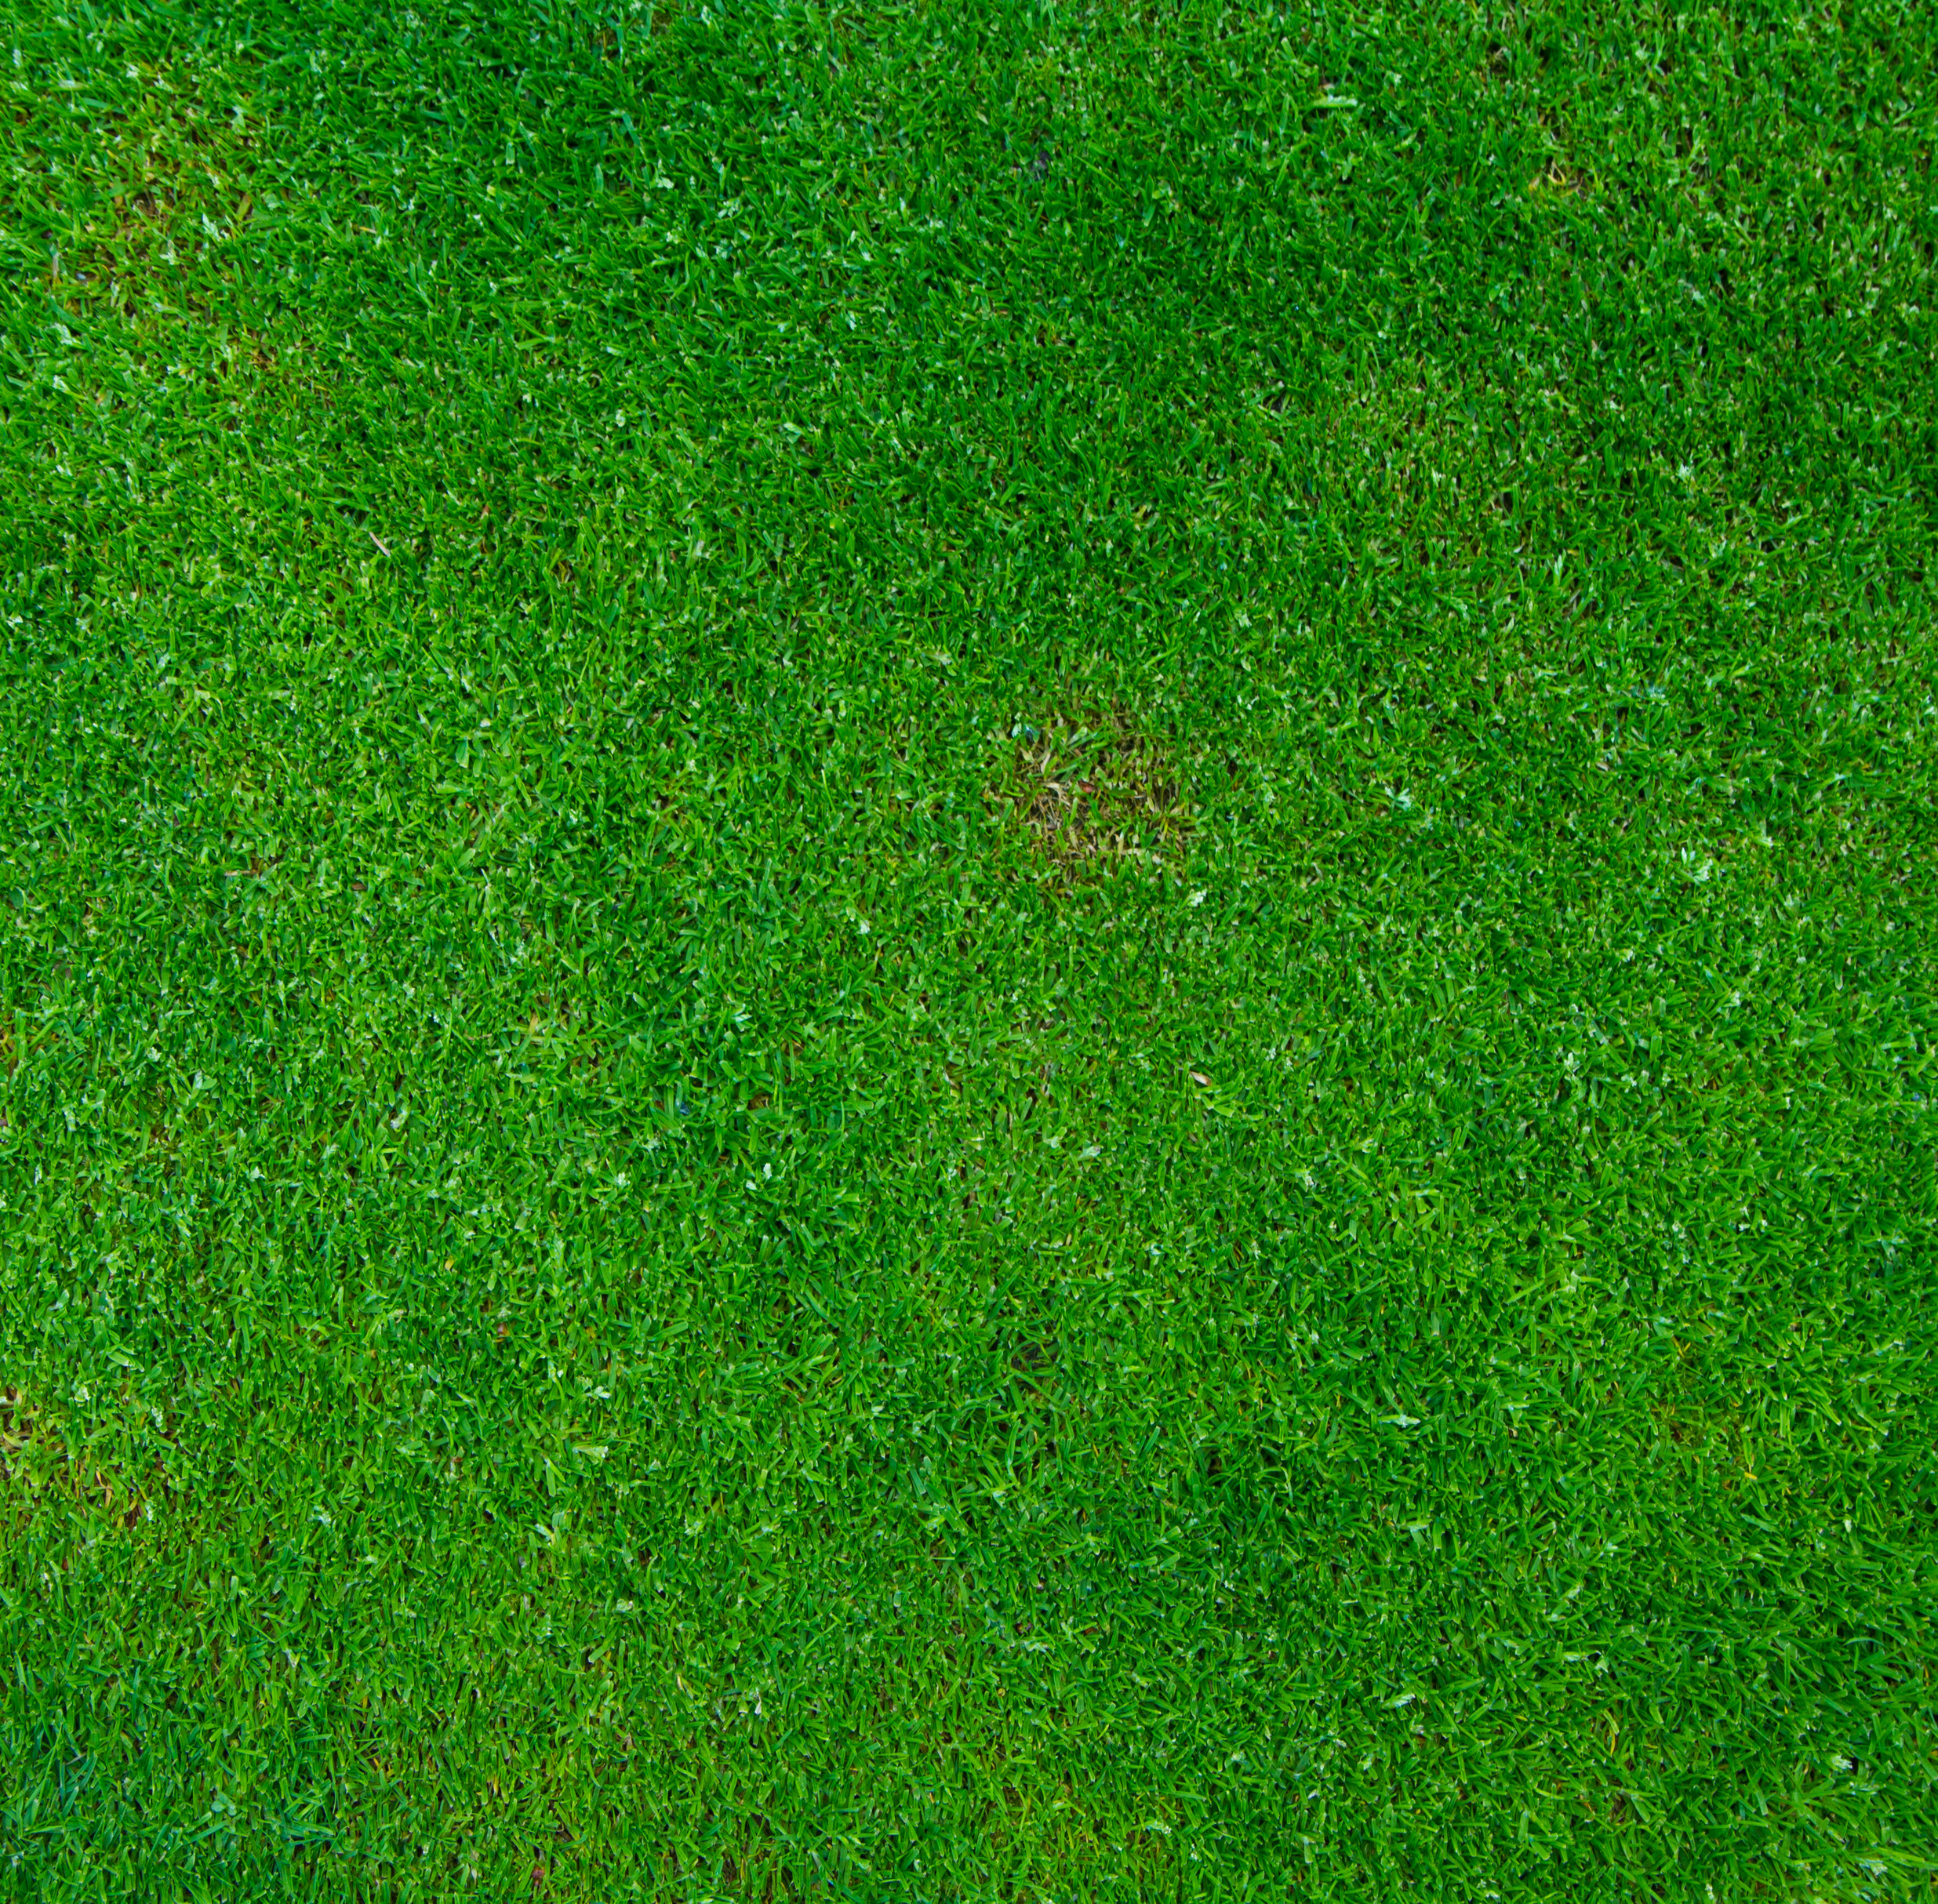 photodune-4624970-background-of-green-grass-l1